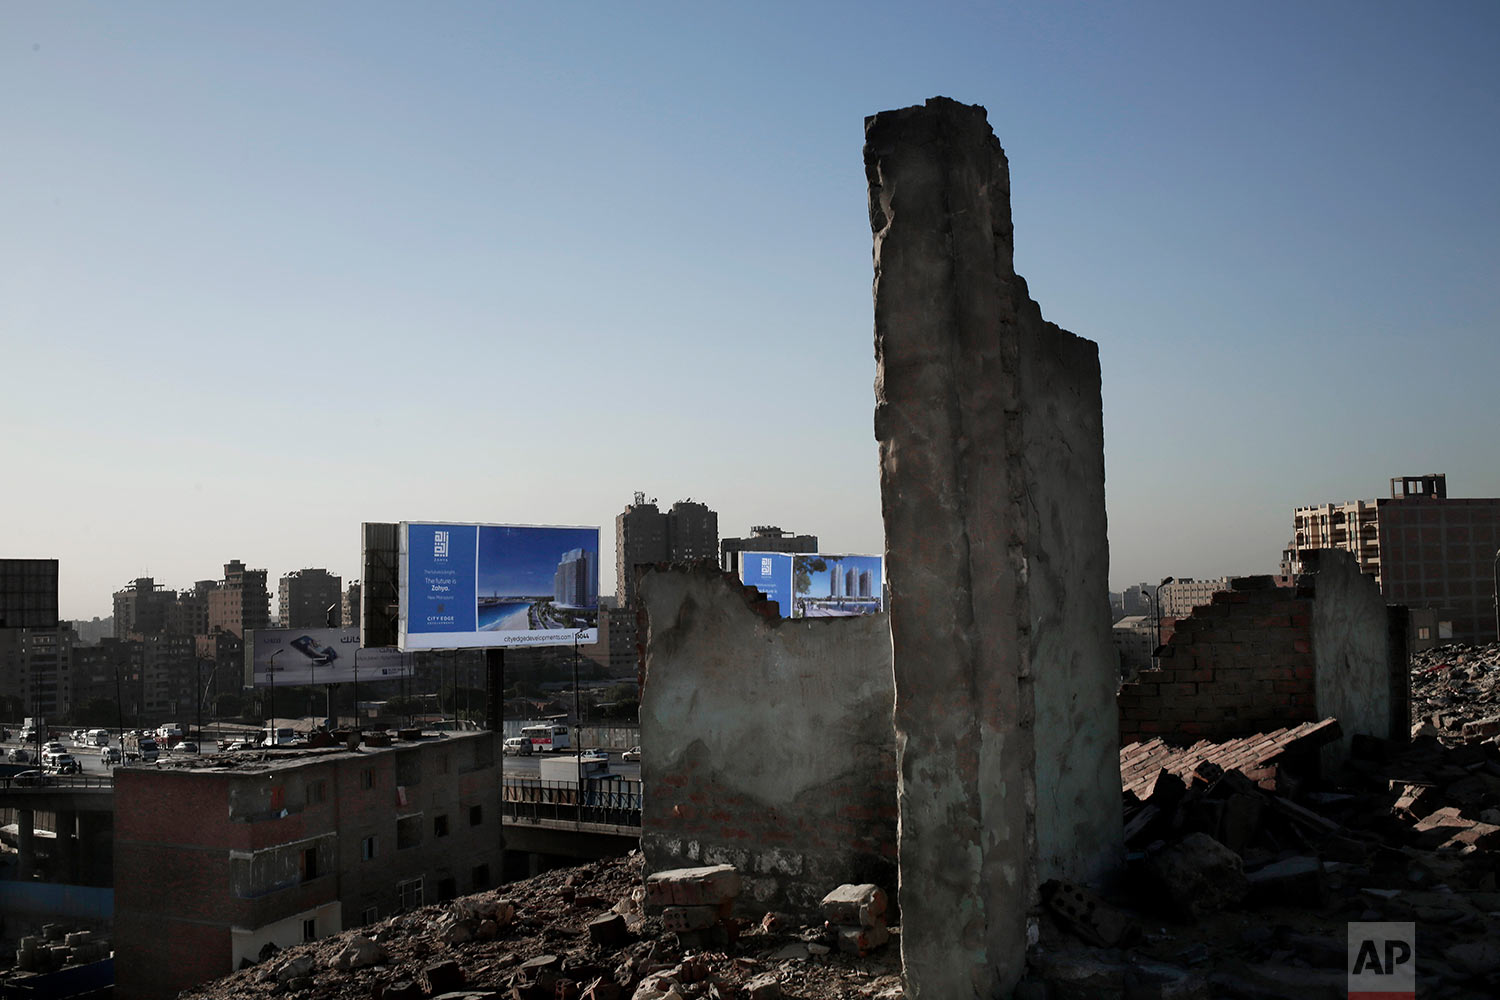 This Oct. 28, 2018 photo, shows billboard advertisements from slum area Ezbet Khairallah, in Cairo, Egypt. (AP Photo/Nariman El-Mofty)